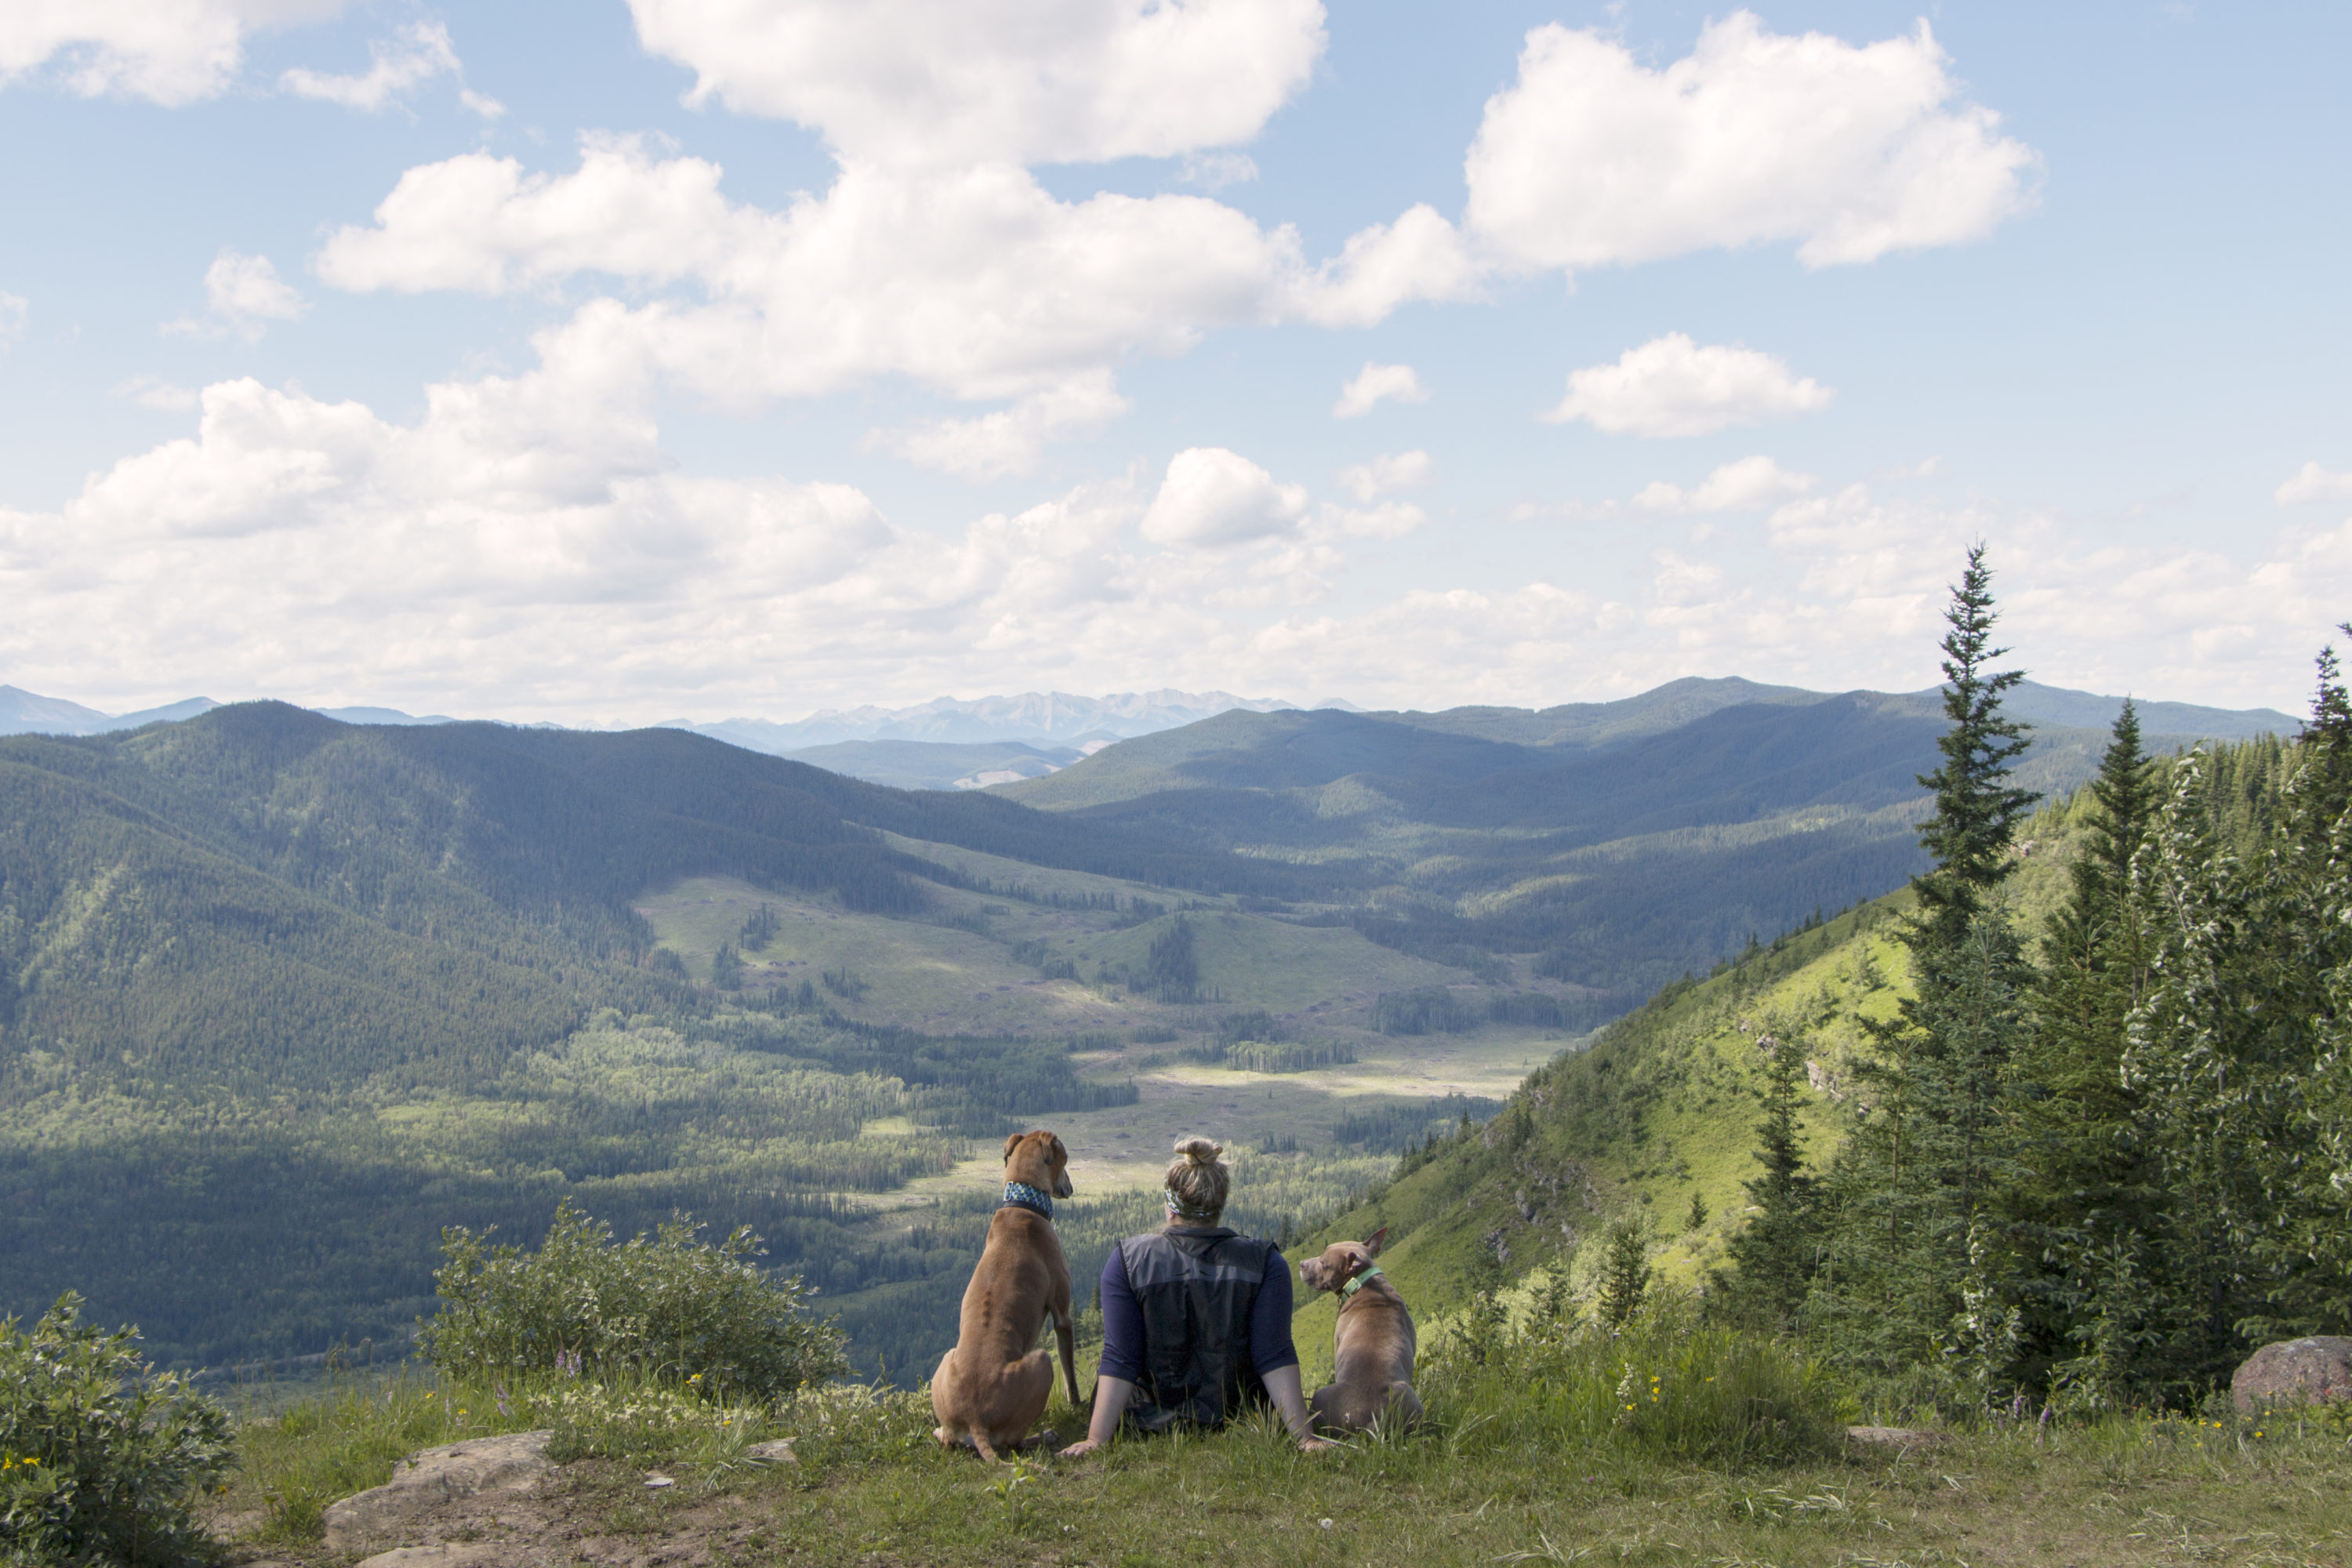 Mountains, Mutts and MS